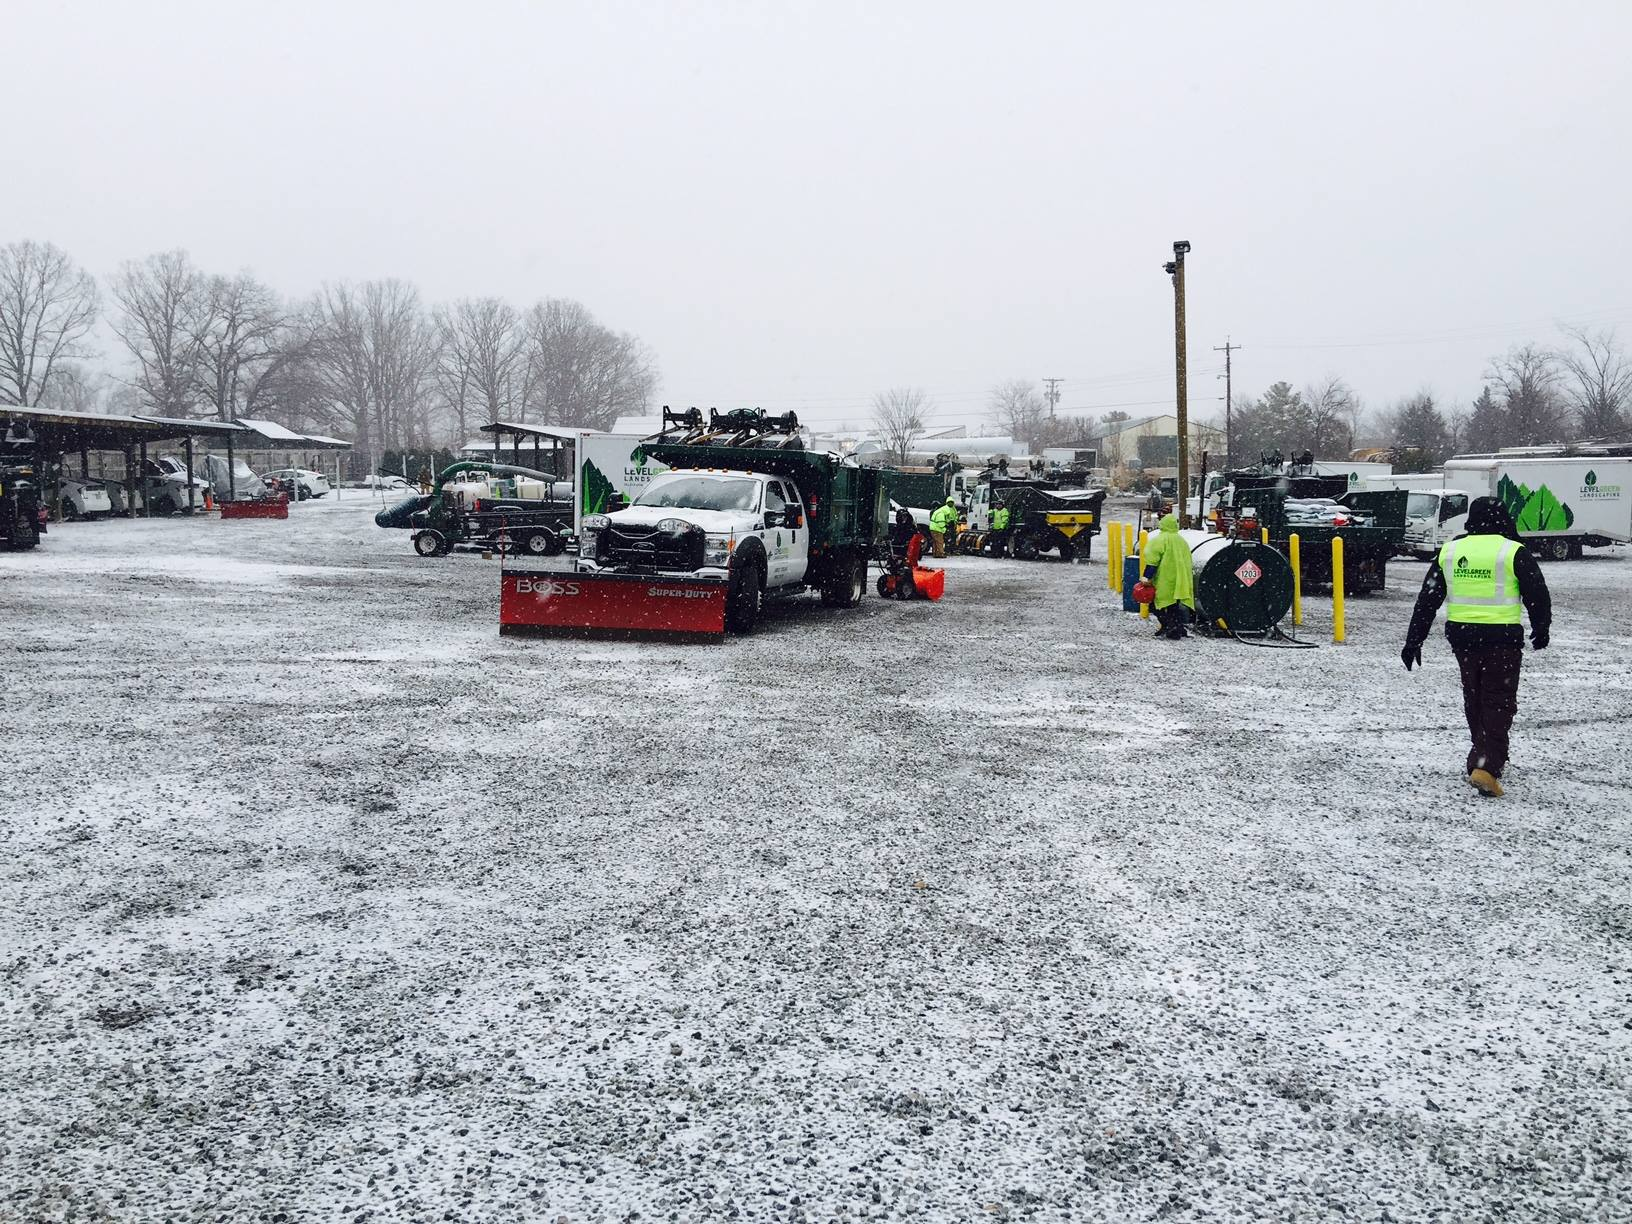 Inspecting snow removal equipment